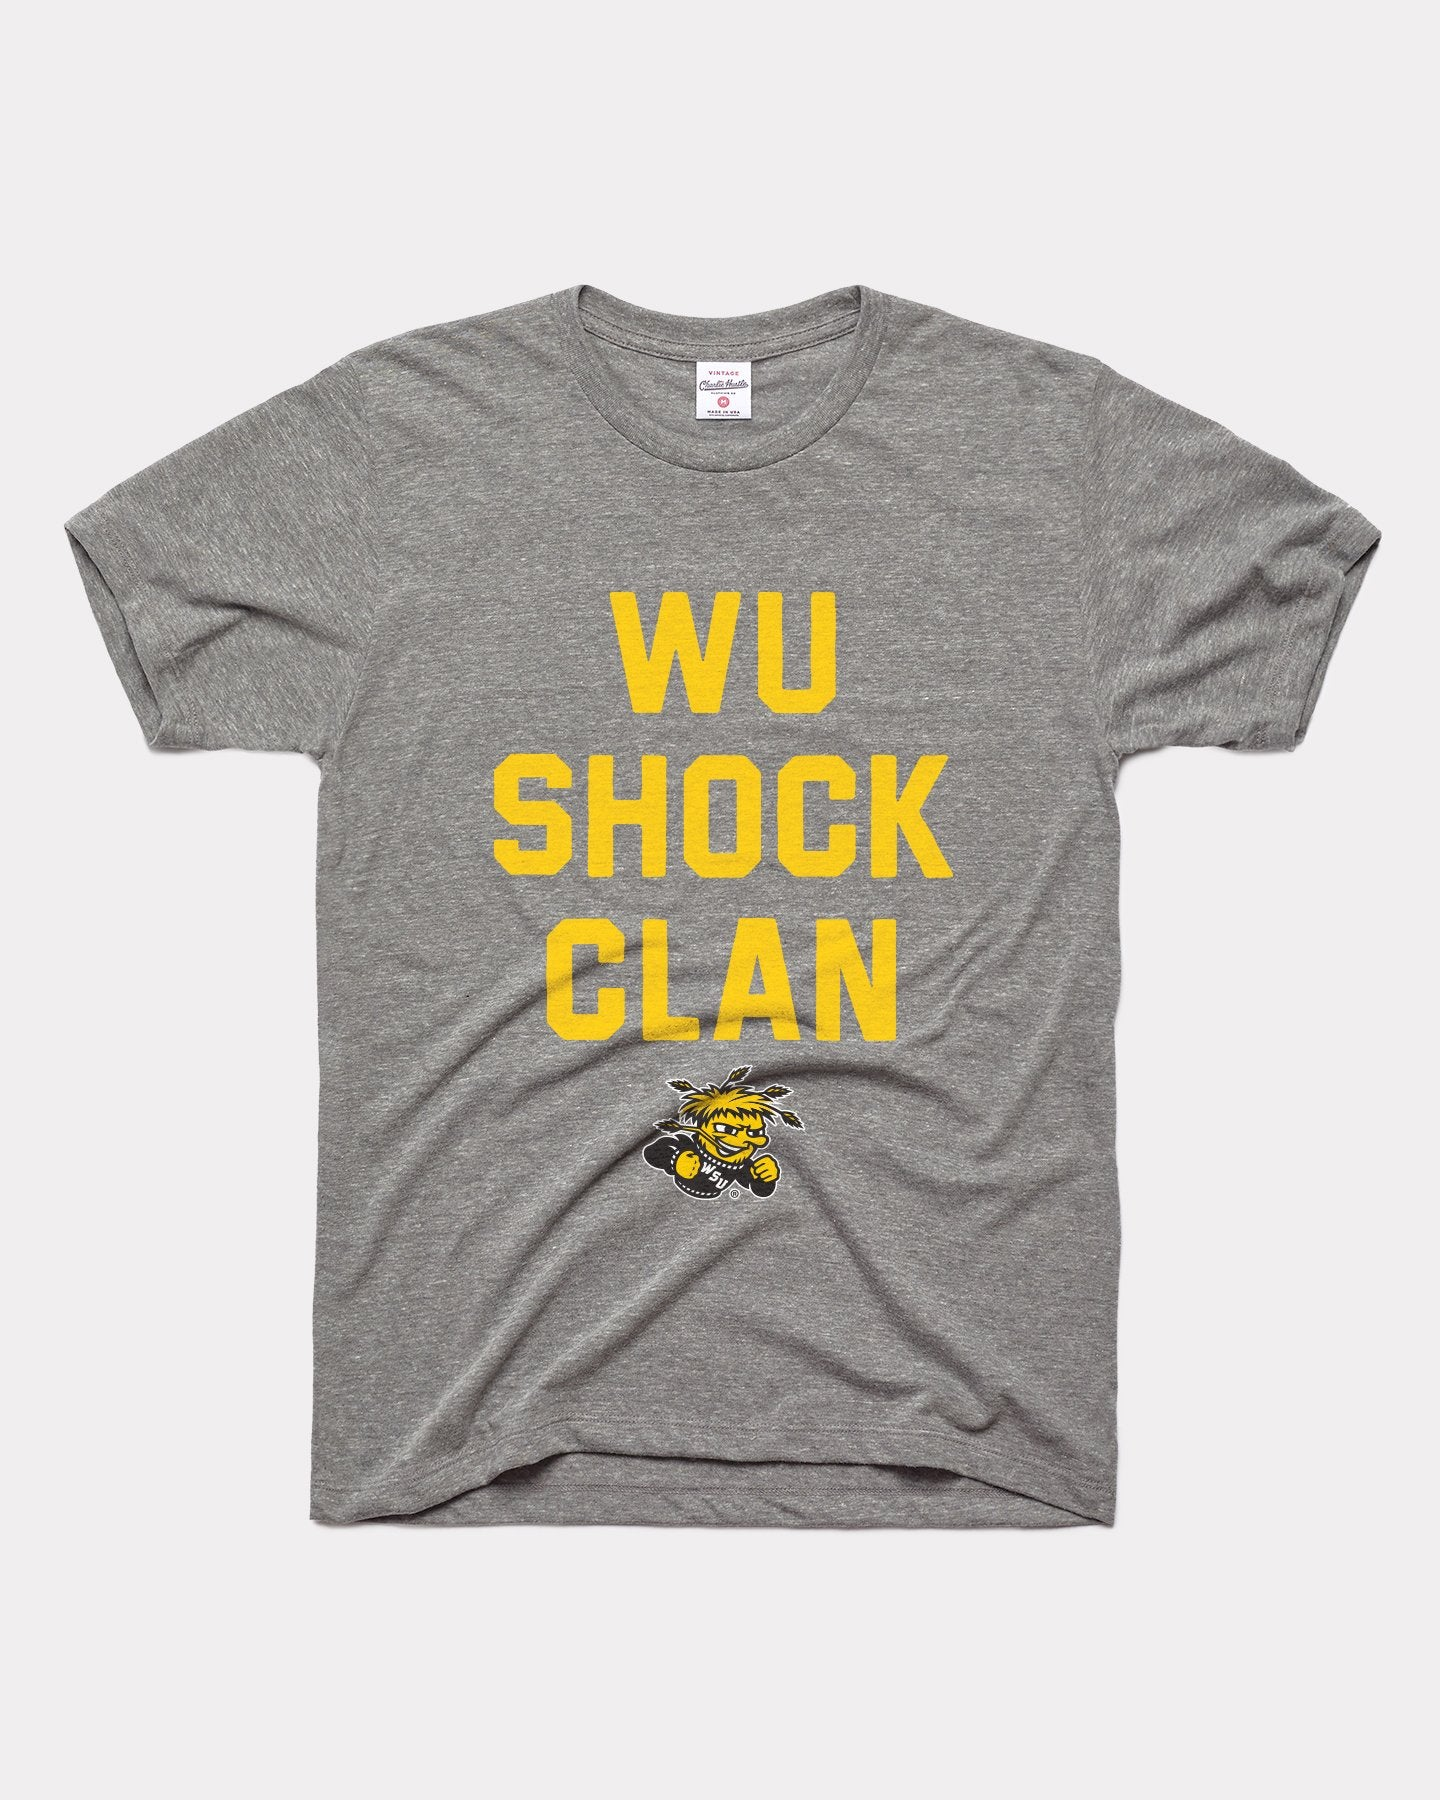 Grey Wichita State Shockers Wu Shock Clan Vintage T-Shirt